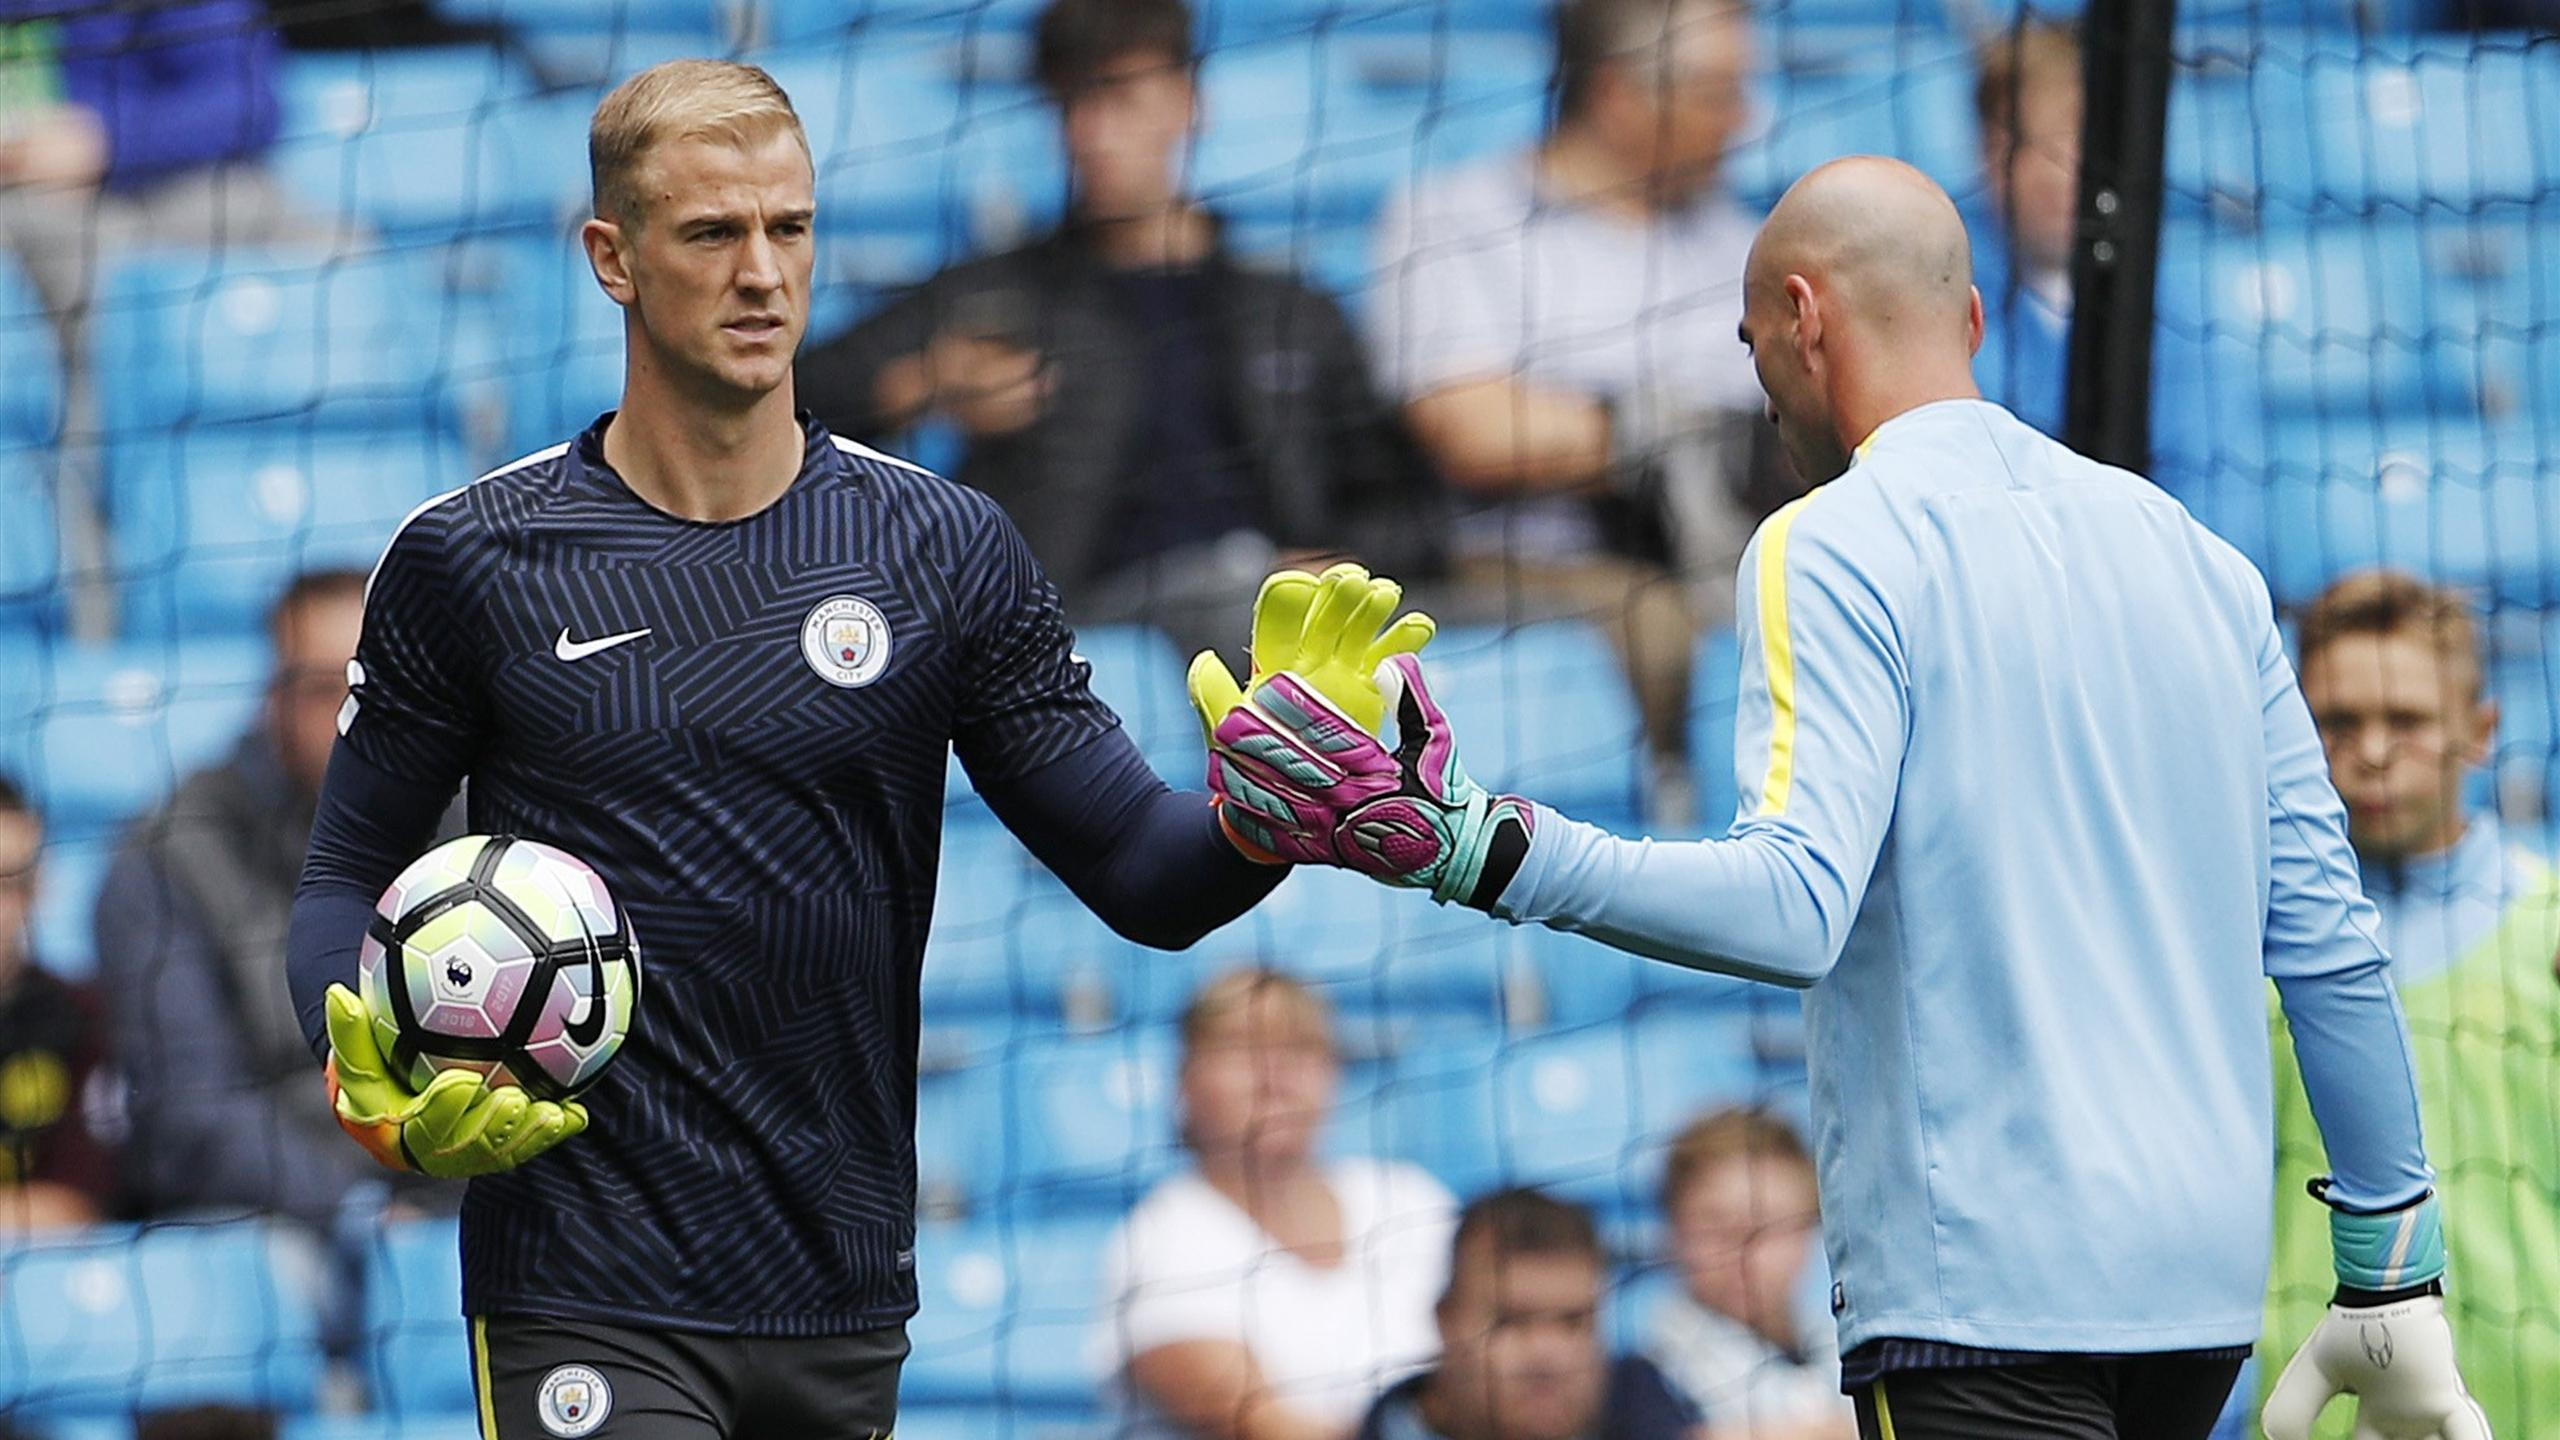 Manchester City's Joe Hart warms up with Willy Caballero before the match